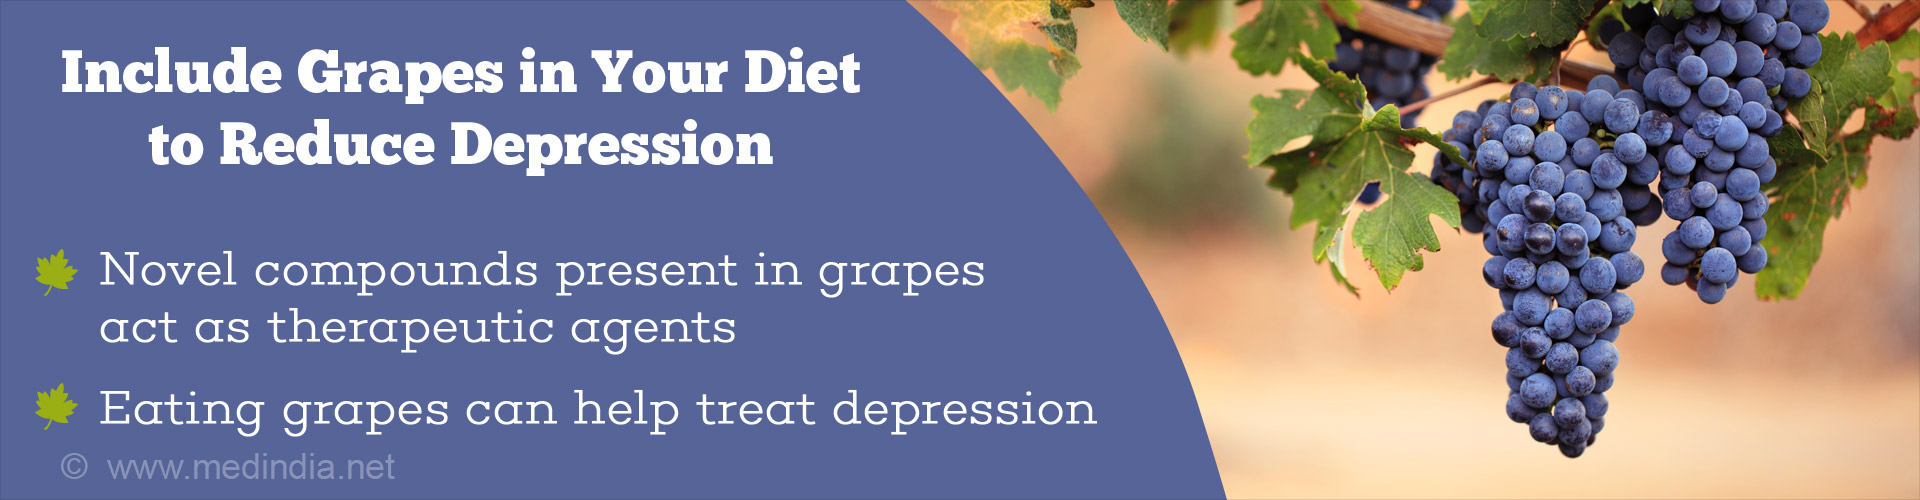 include grapes in your diet to reduce depression - novel compounds present in grapes act as therapeutic agents - eating grapes can help treat depression